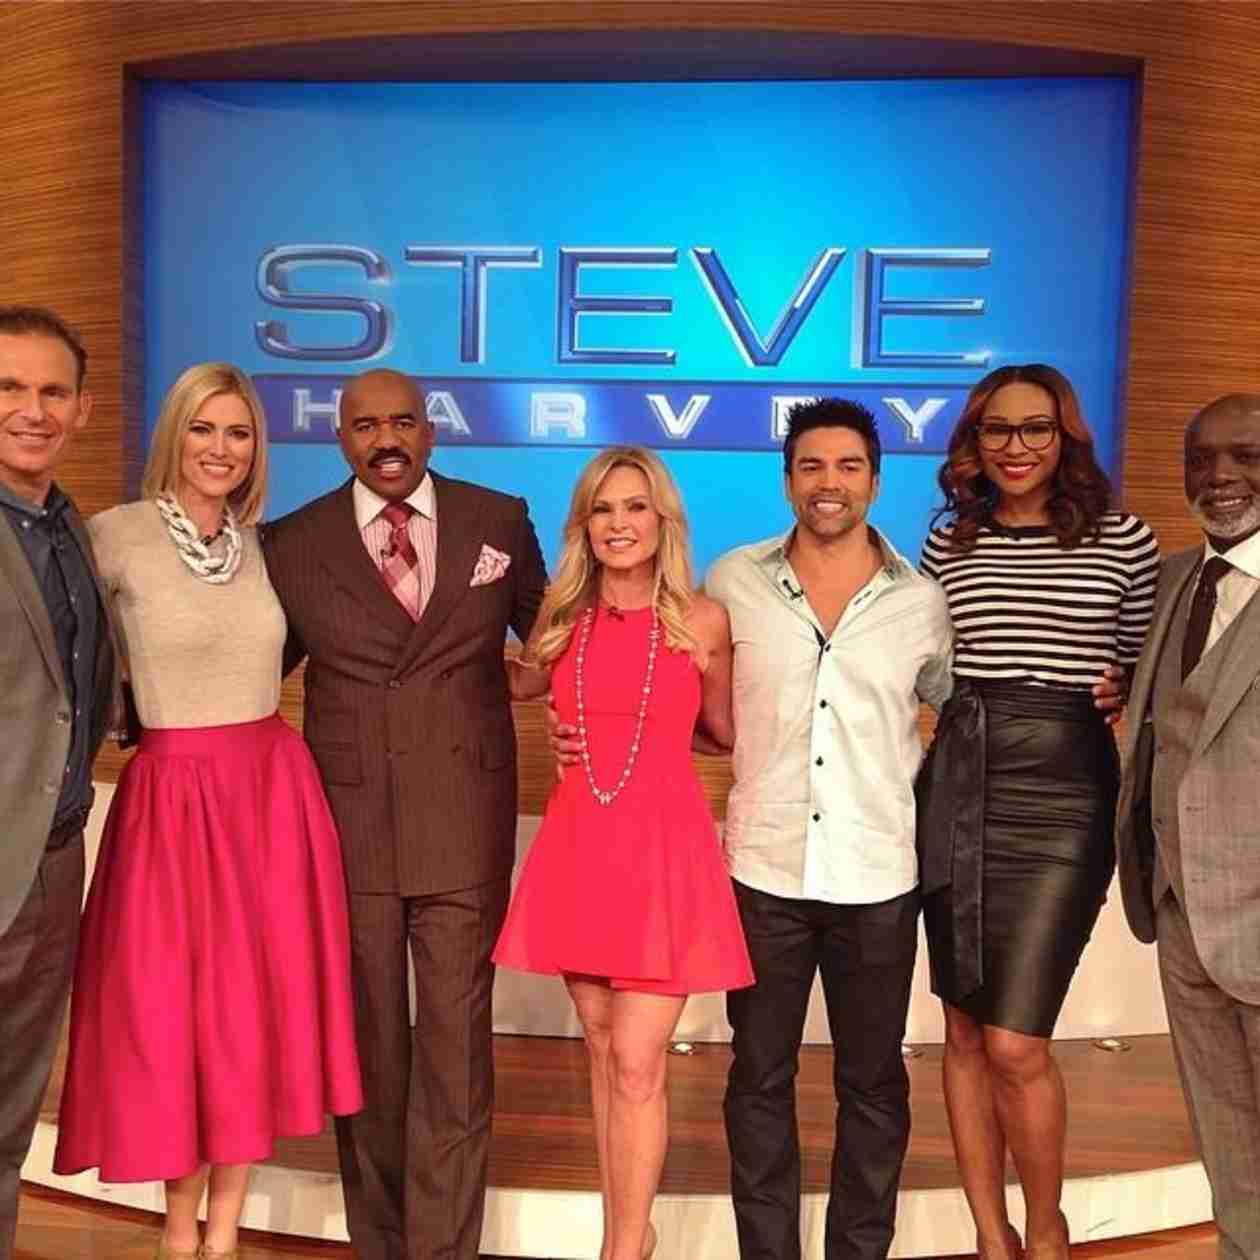 Tamra Barney to Appear on Steve Harvey — Which Other Housewives Are Joining Her? (PHOTO)